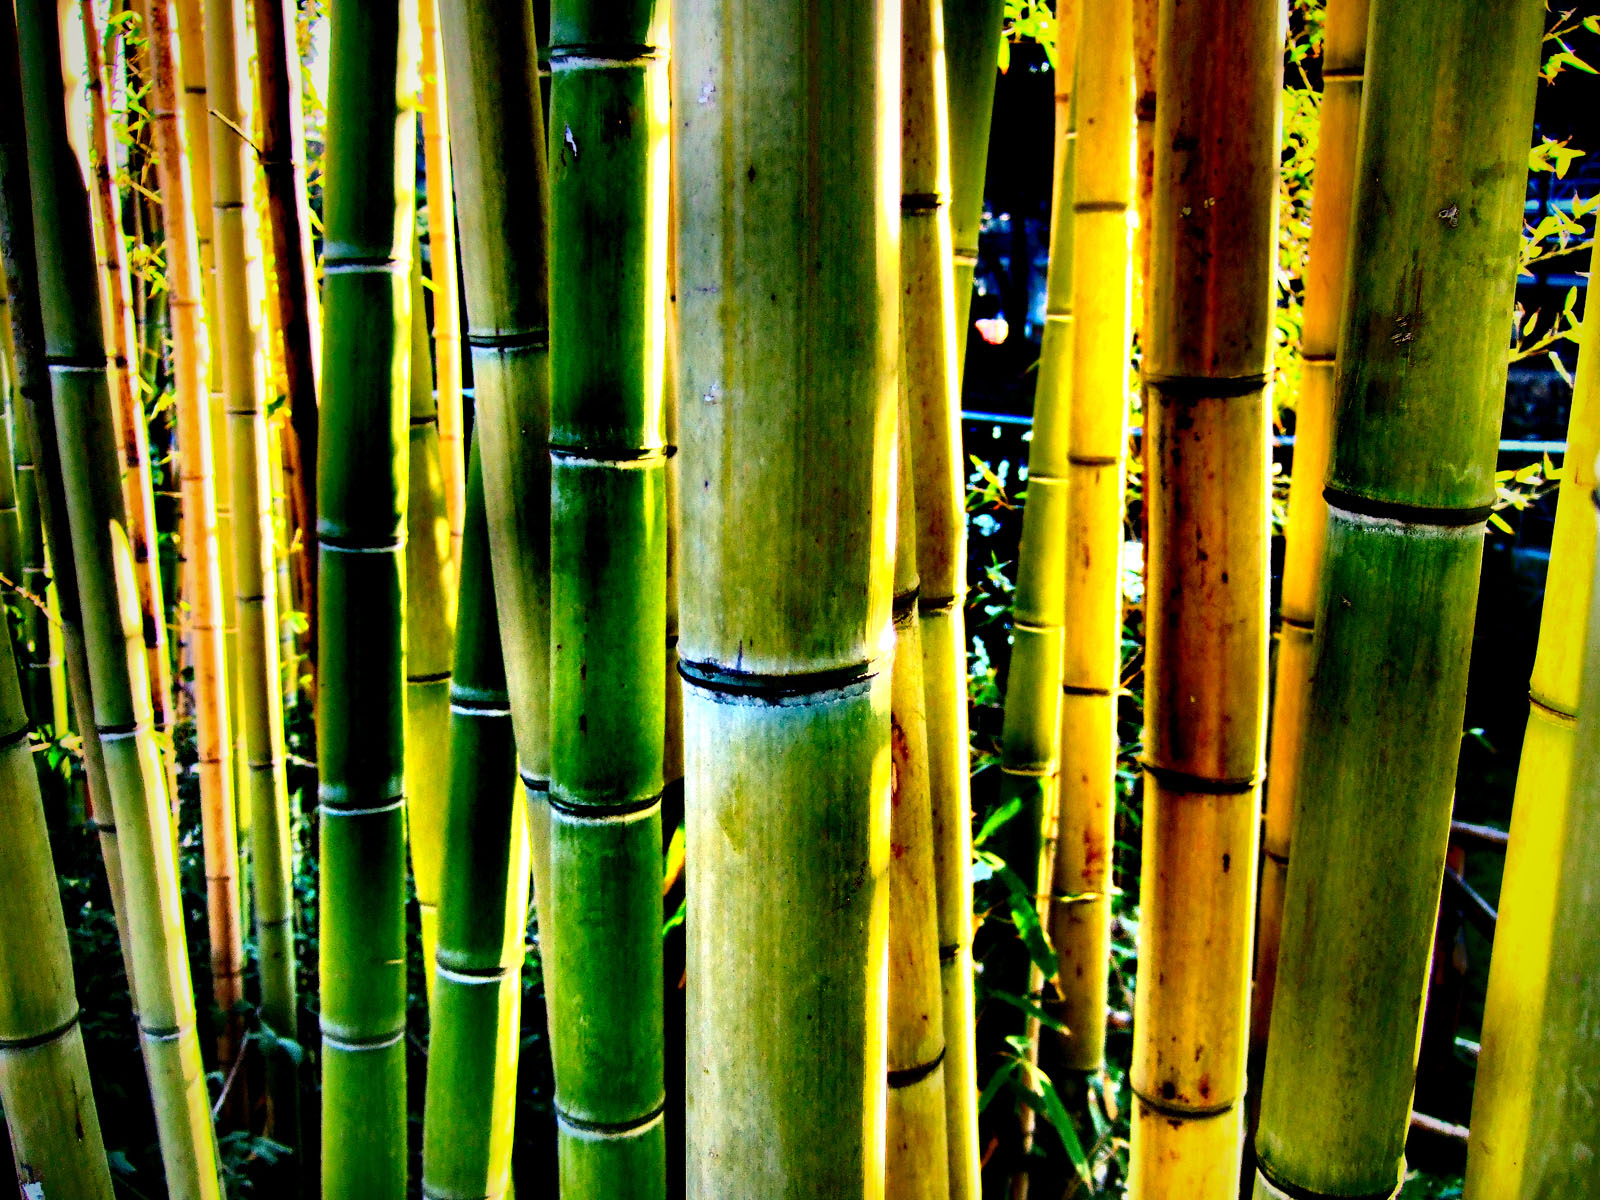 bamboo wallpaper by doantrangnguyen - photo #14